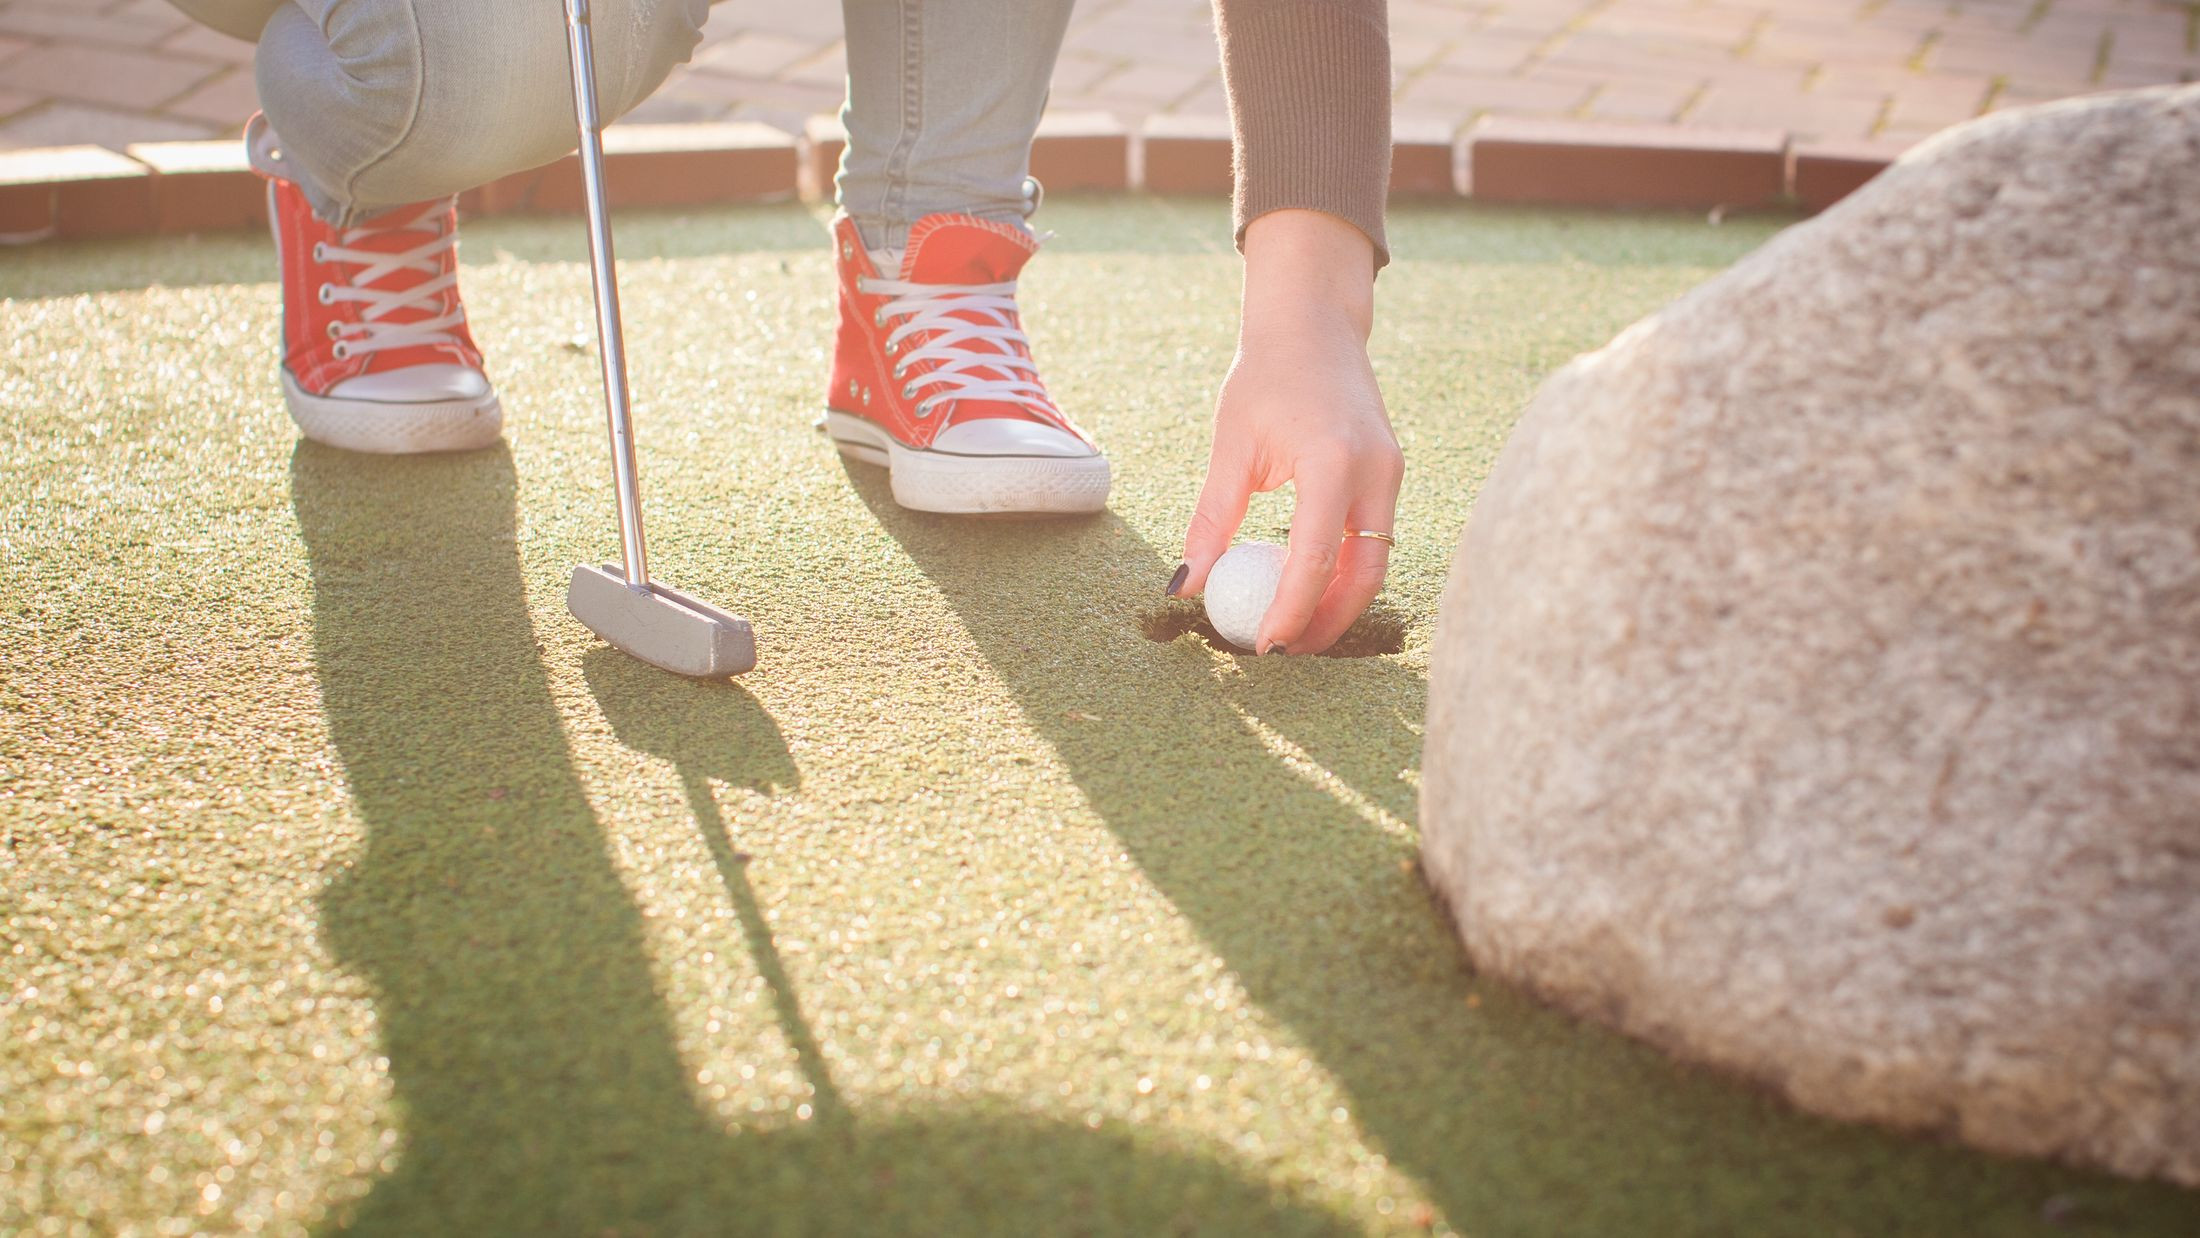 Detail of young woman playing mini/adventure golf on a beautiful sunny summer day (colorful image, photo was taken in warm evening light); Shutterstock ID 219627934; PO: Project Italy - Facilities images; Job: Project Italy - Facilities images; Client: H&J/Citalia